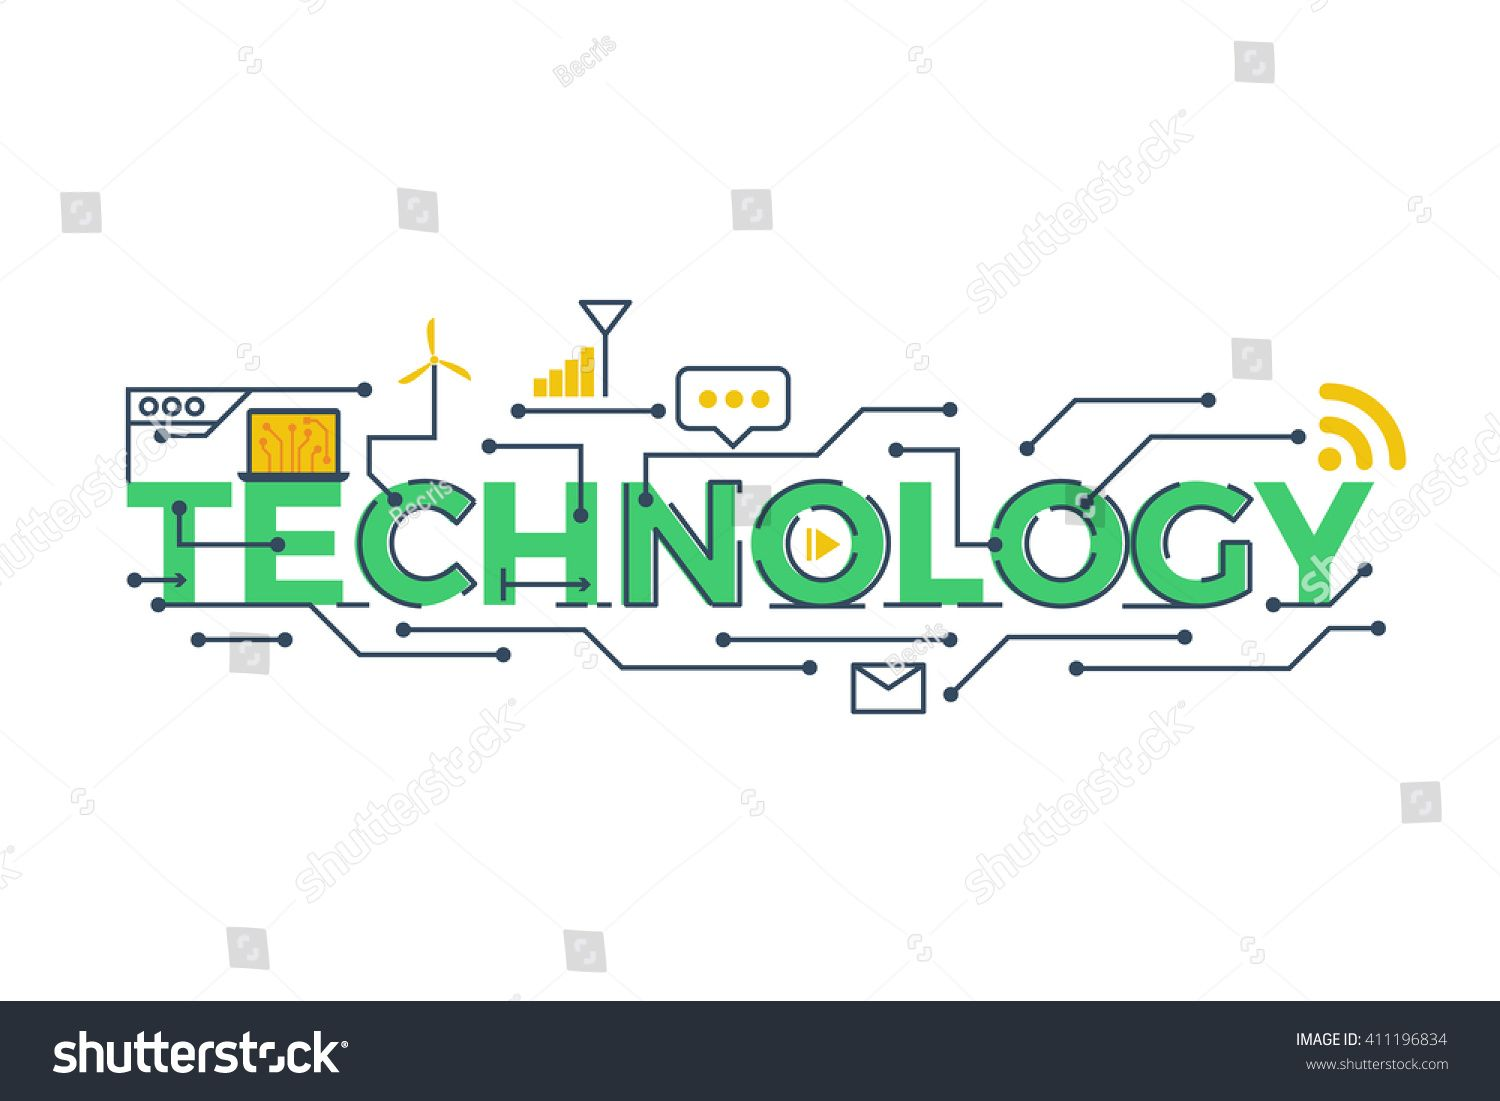 Illustration Of Technology Word In Stem Science Technology Engineering Mathematics Education Concept Typogra Mathematics Education Stem Science Word Stems